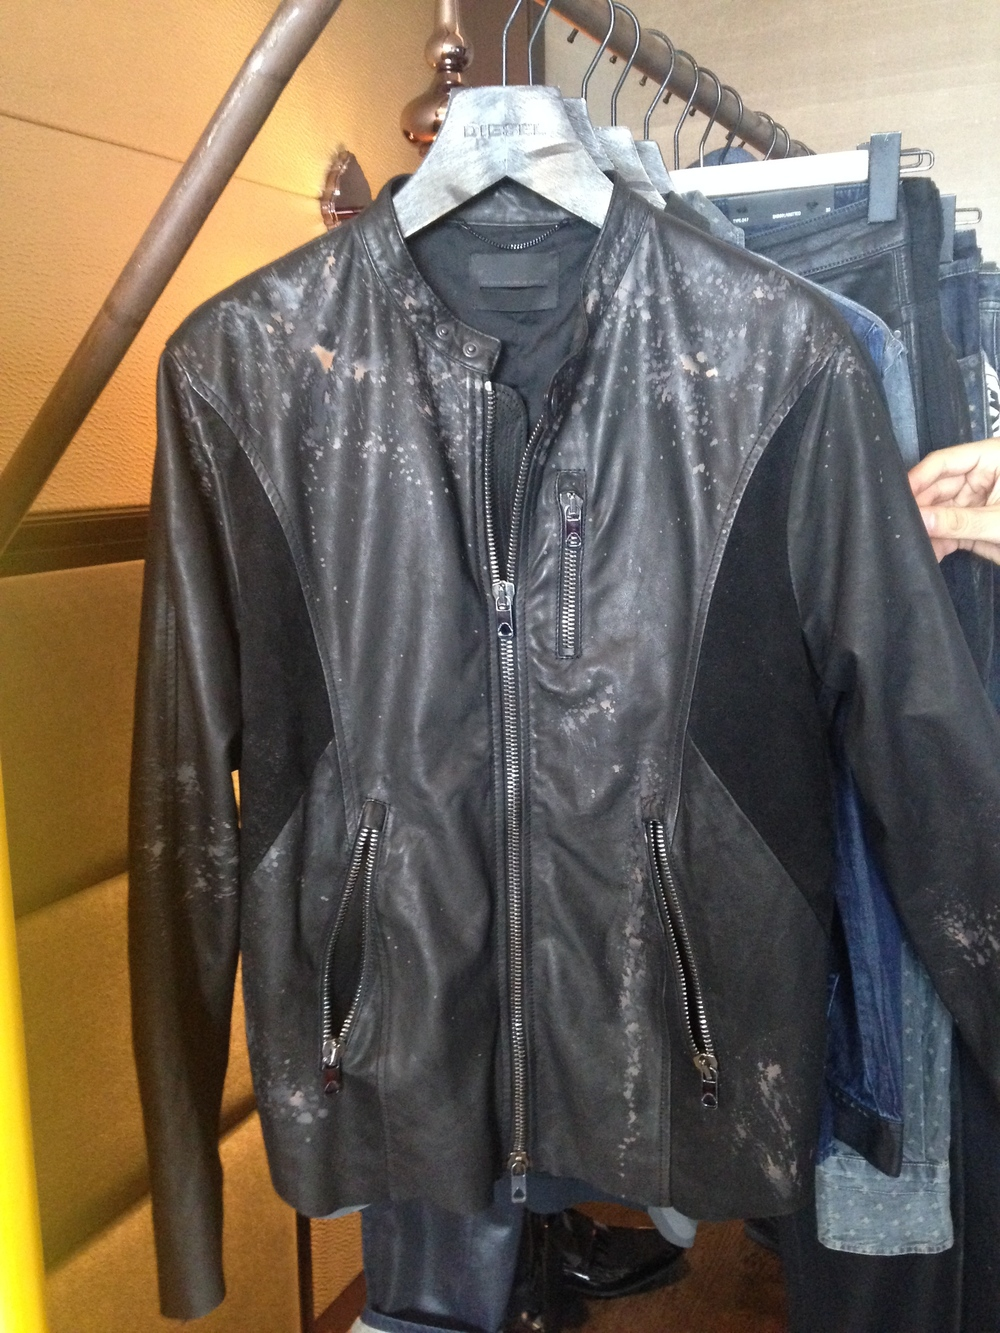 Fell in love with this jacket from DIESEL Black Gold